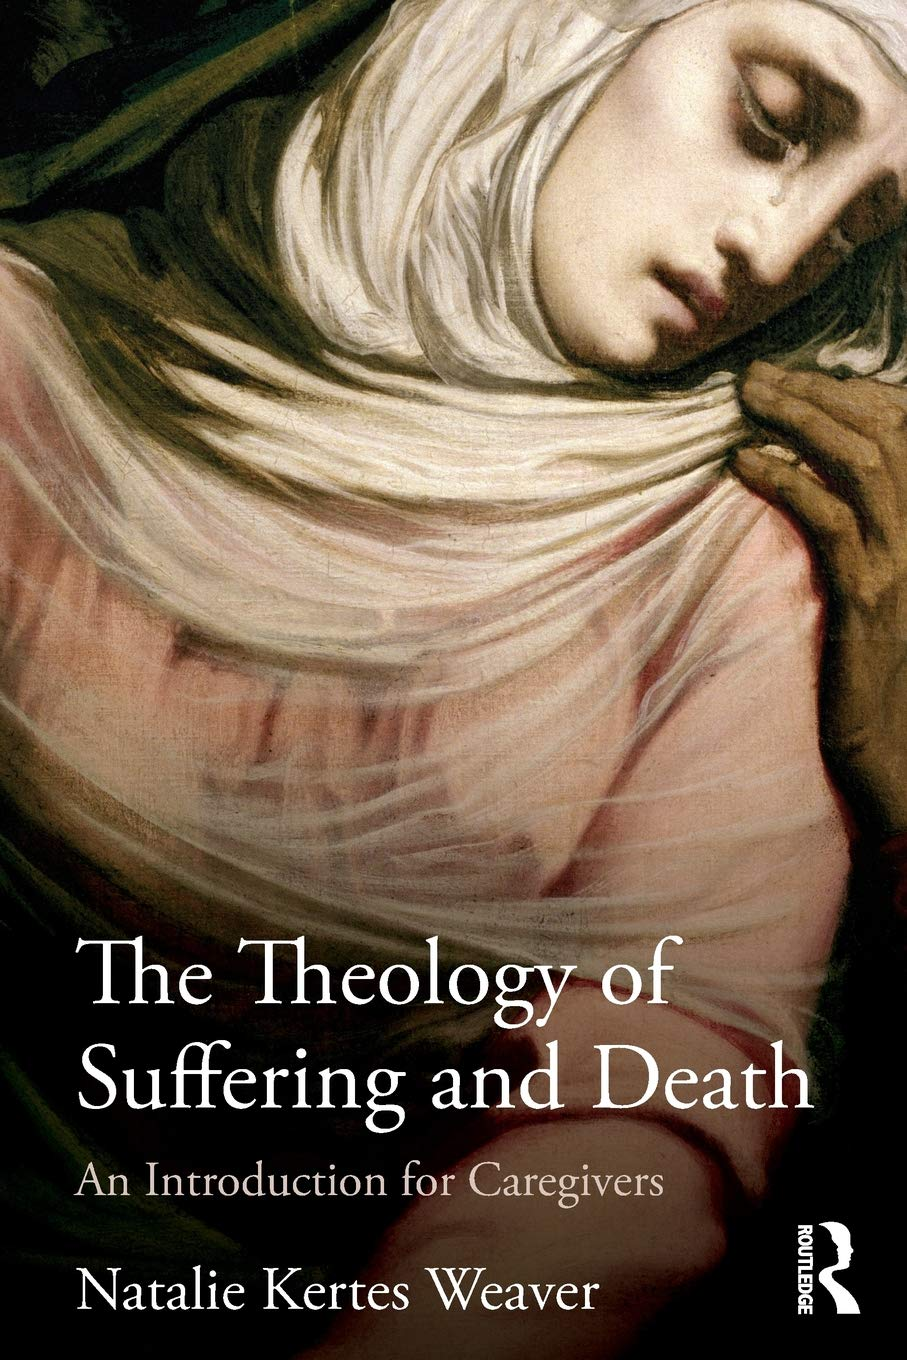 The Theology of Suffering and Death: An Introduction for Caregivers pdf